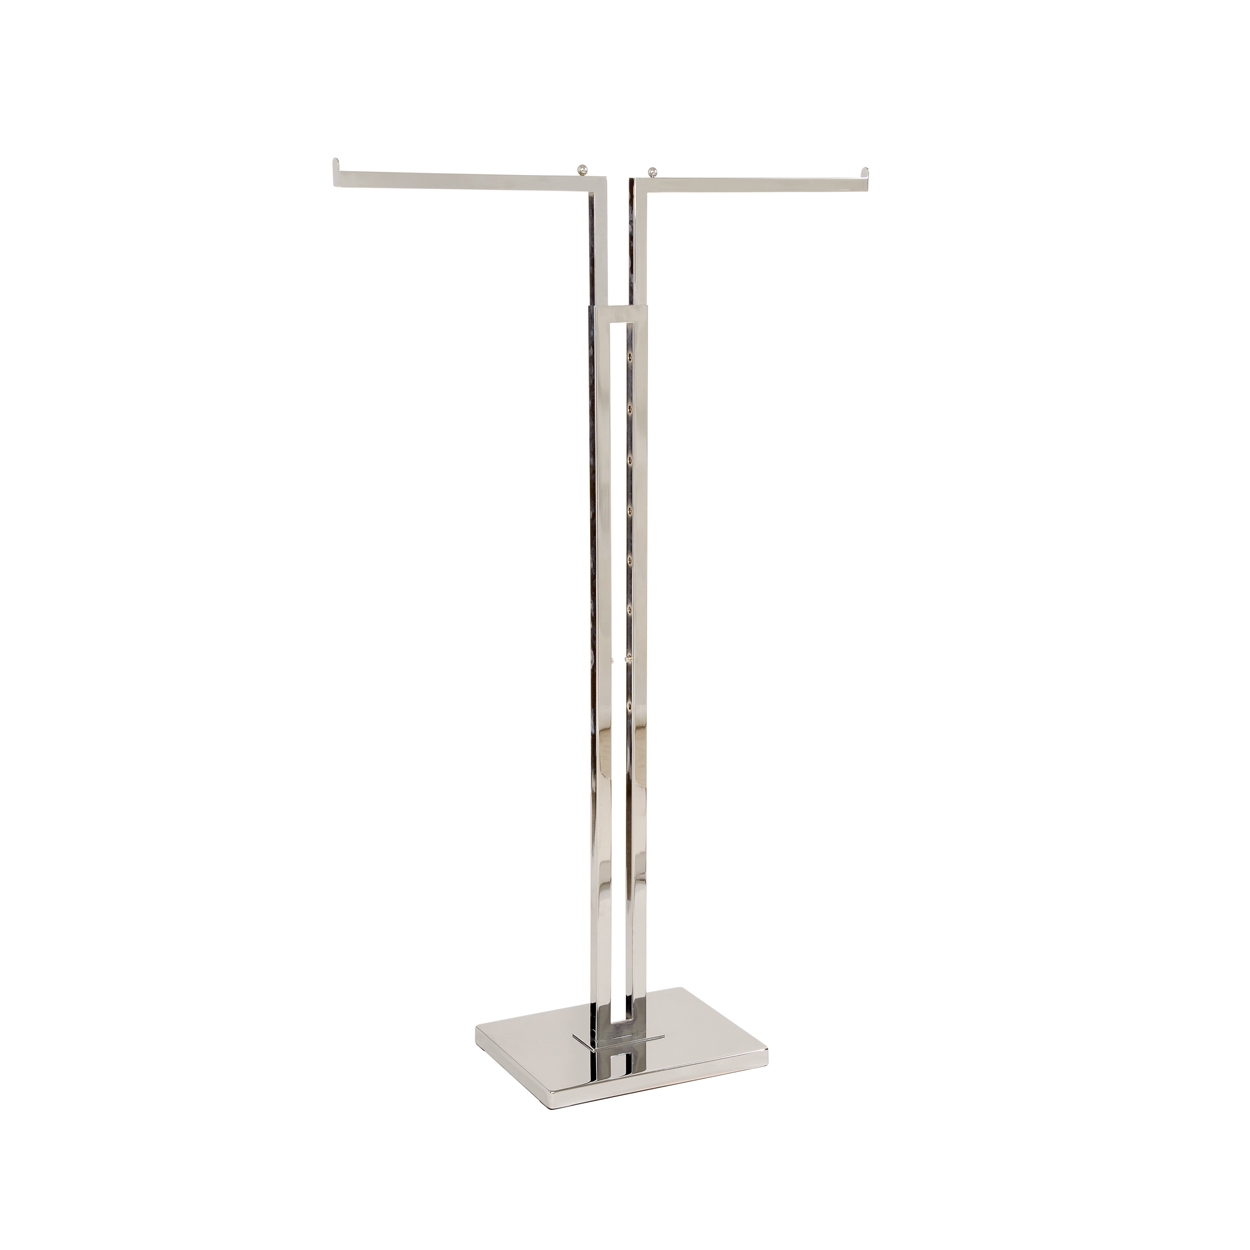 2 Way Clothes Rack Kit. Dimensions - Height 1180mm x Width 380mm x Depth 305mm x Length (Straight Arms): 405mm